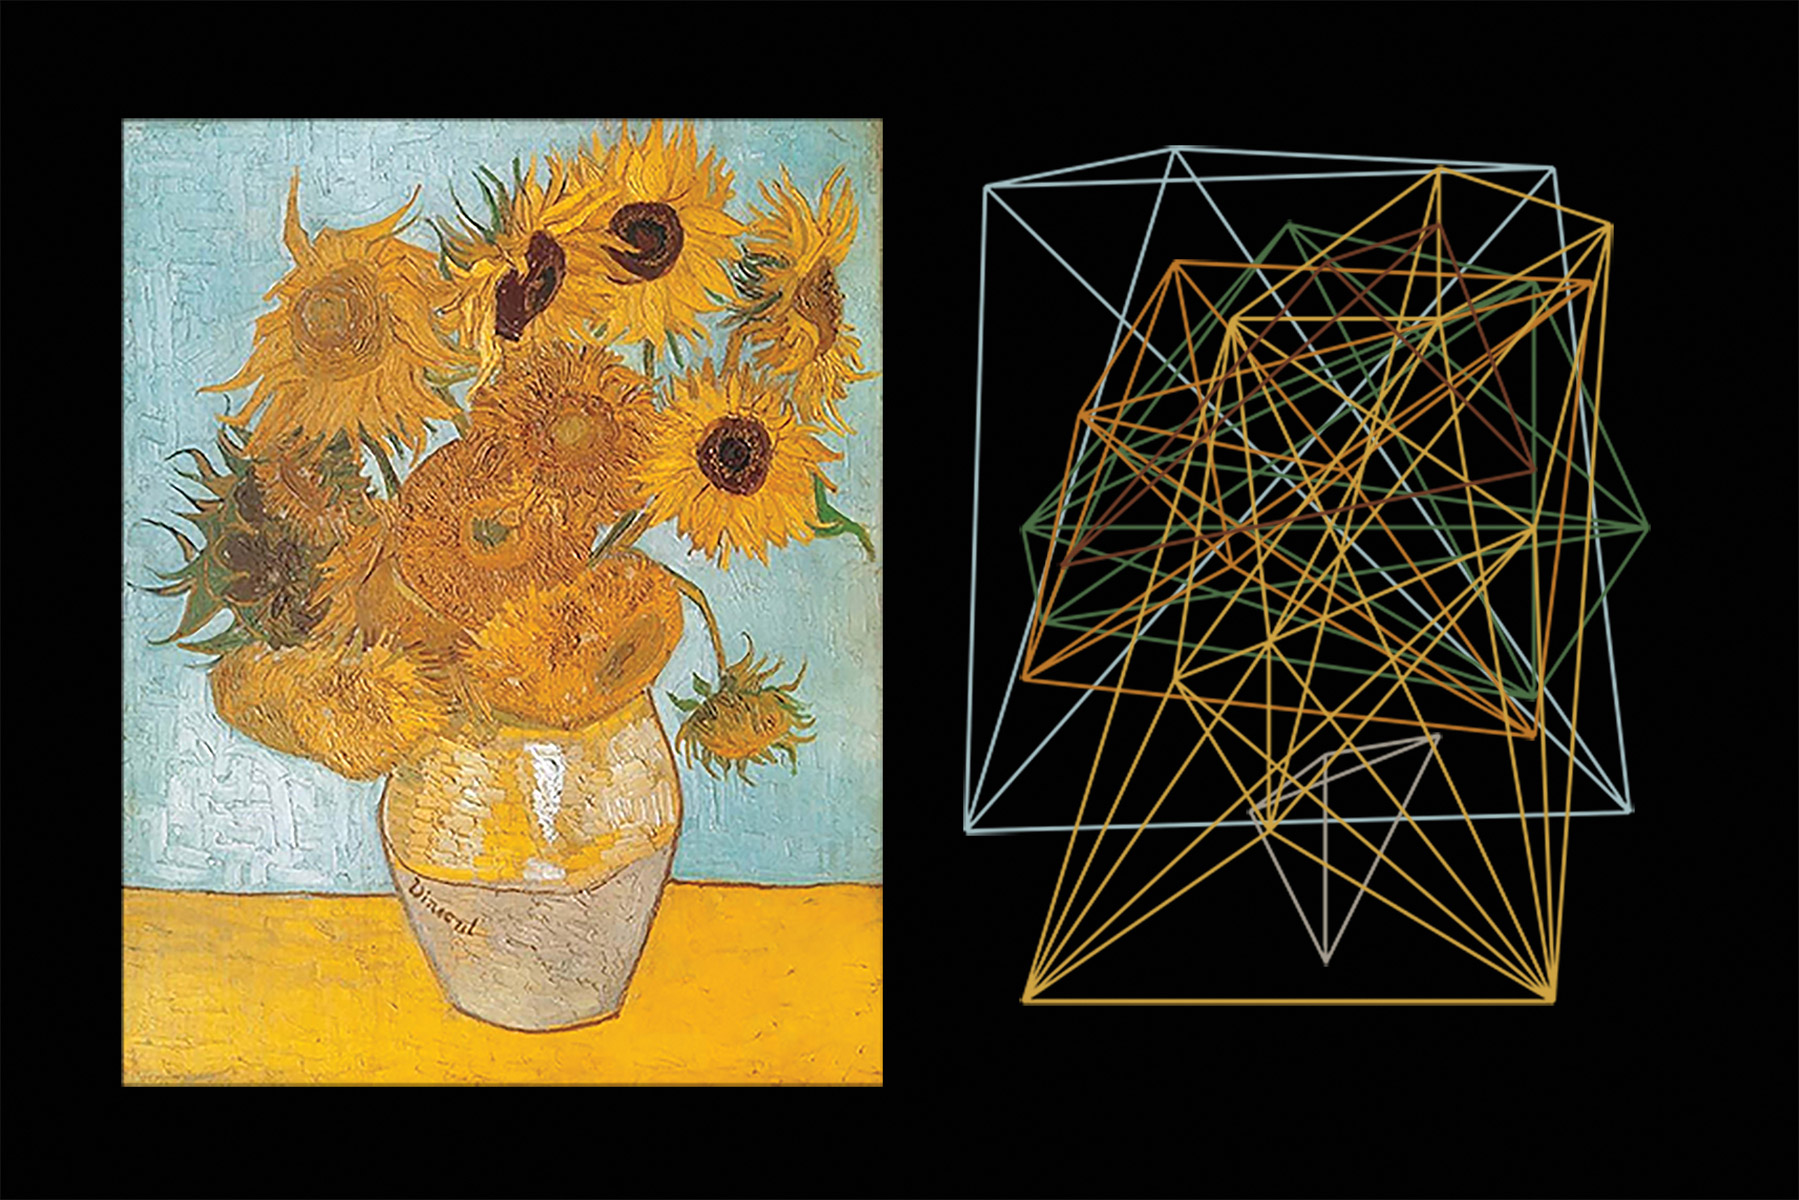 dualpainting-VanGogh-1